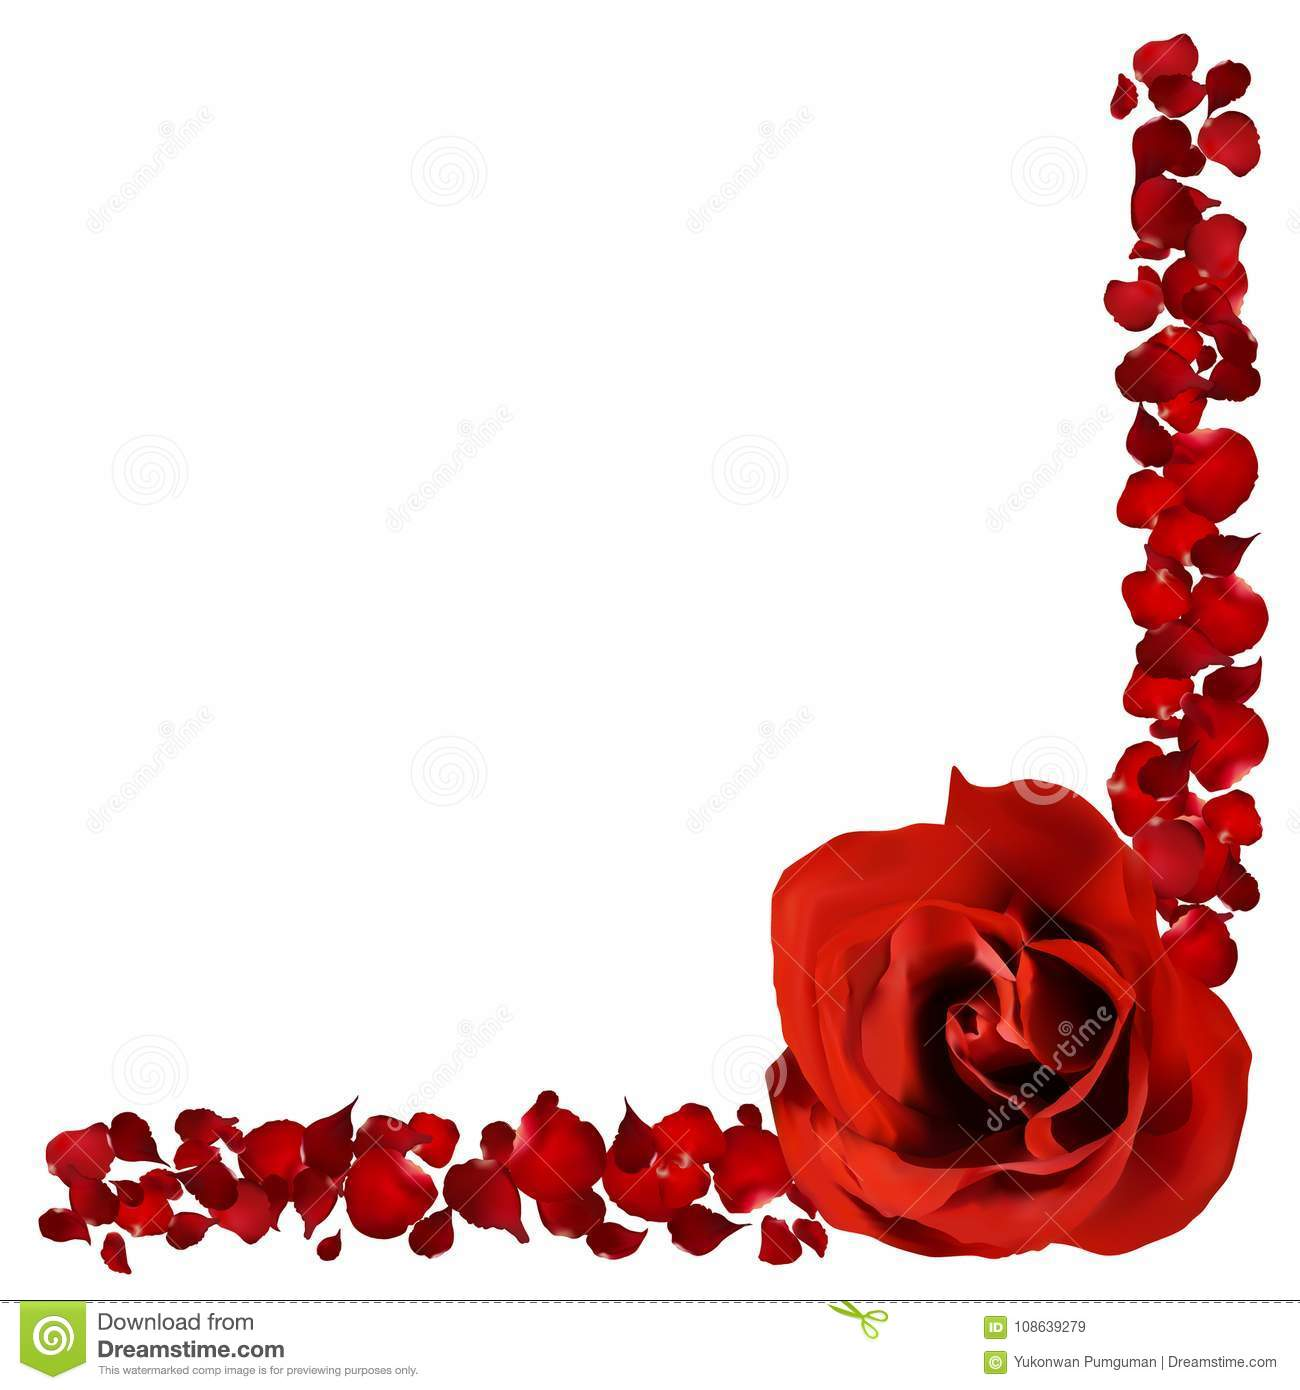 realistic red rose and petals border, flower vector illustration